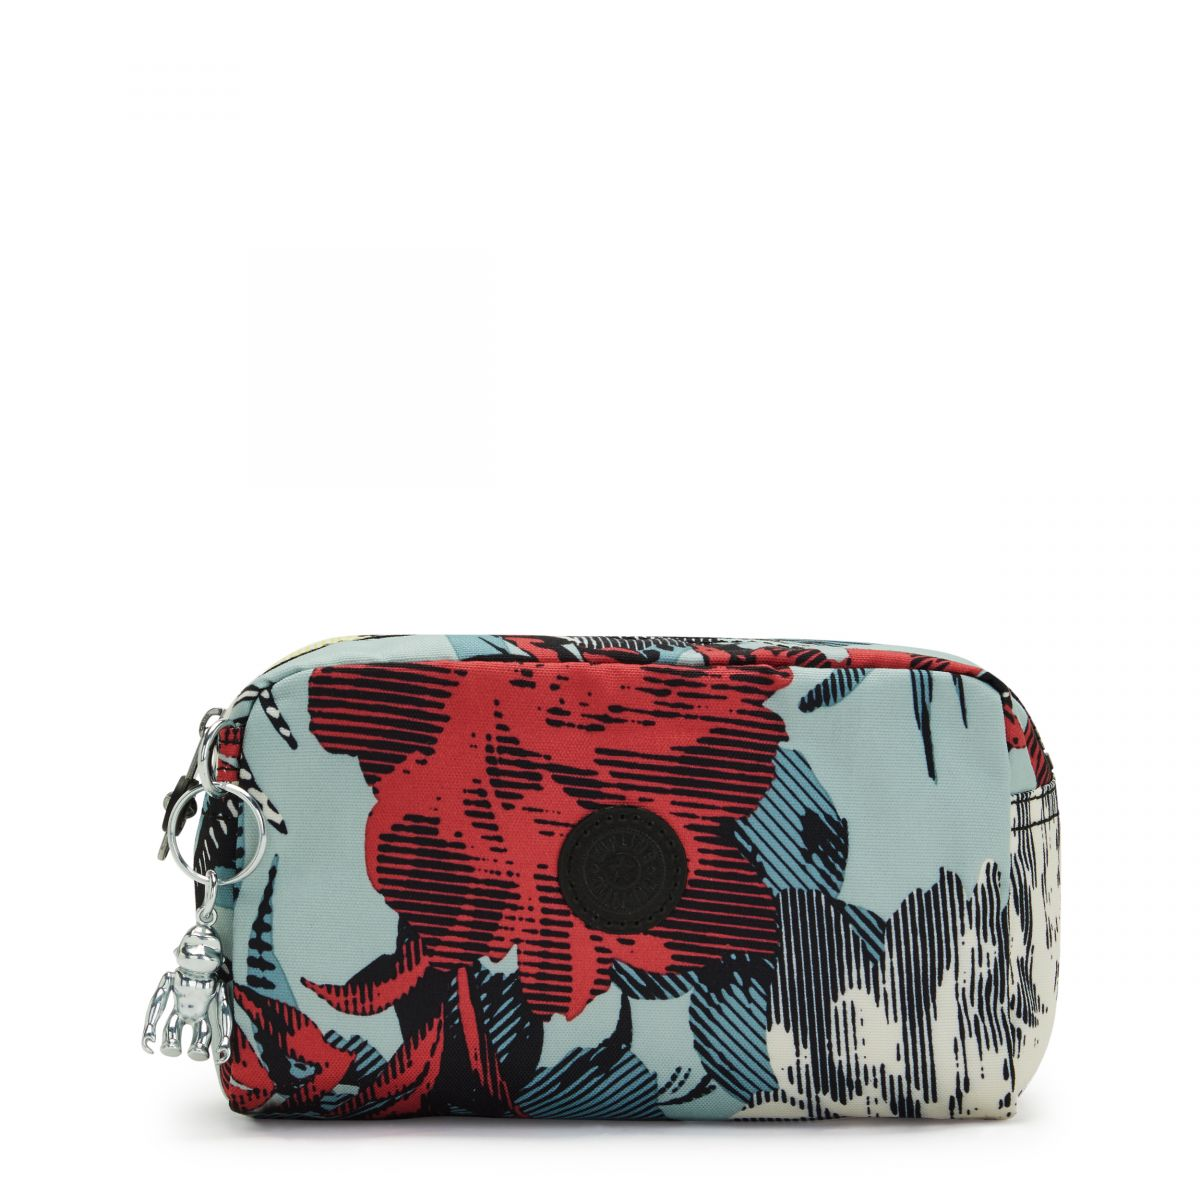 GLEAM ACCESSORIES by Kipling - Front view